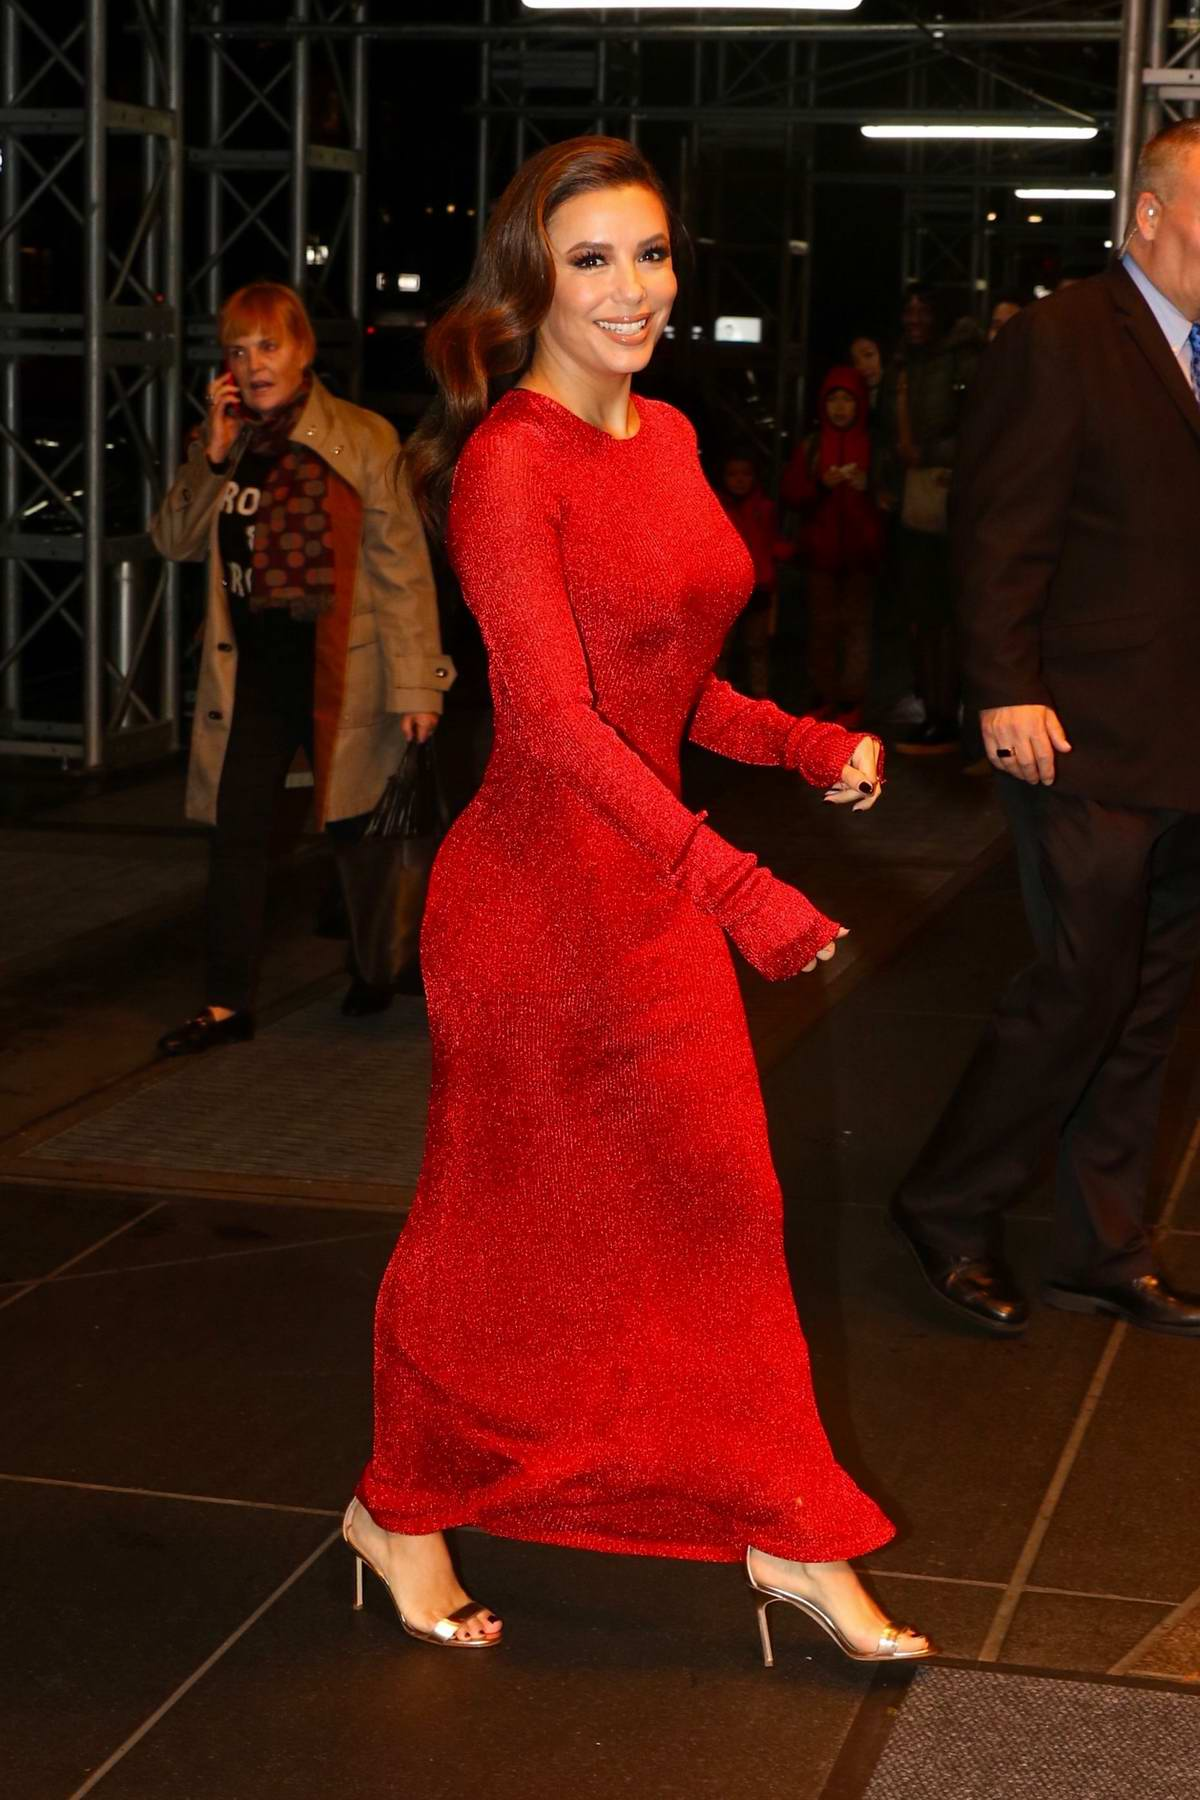 Eva Longoria dazzles in a form-fitting red dress as she arrives at her hotel in New York City